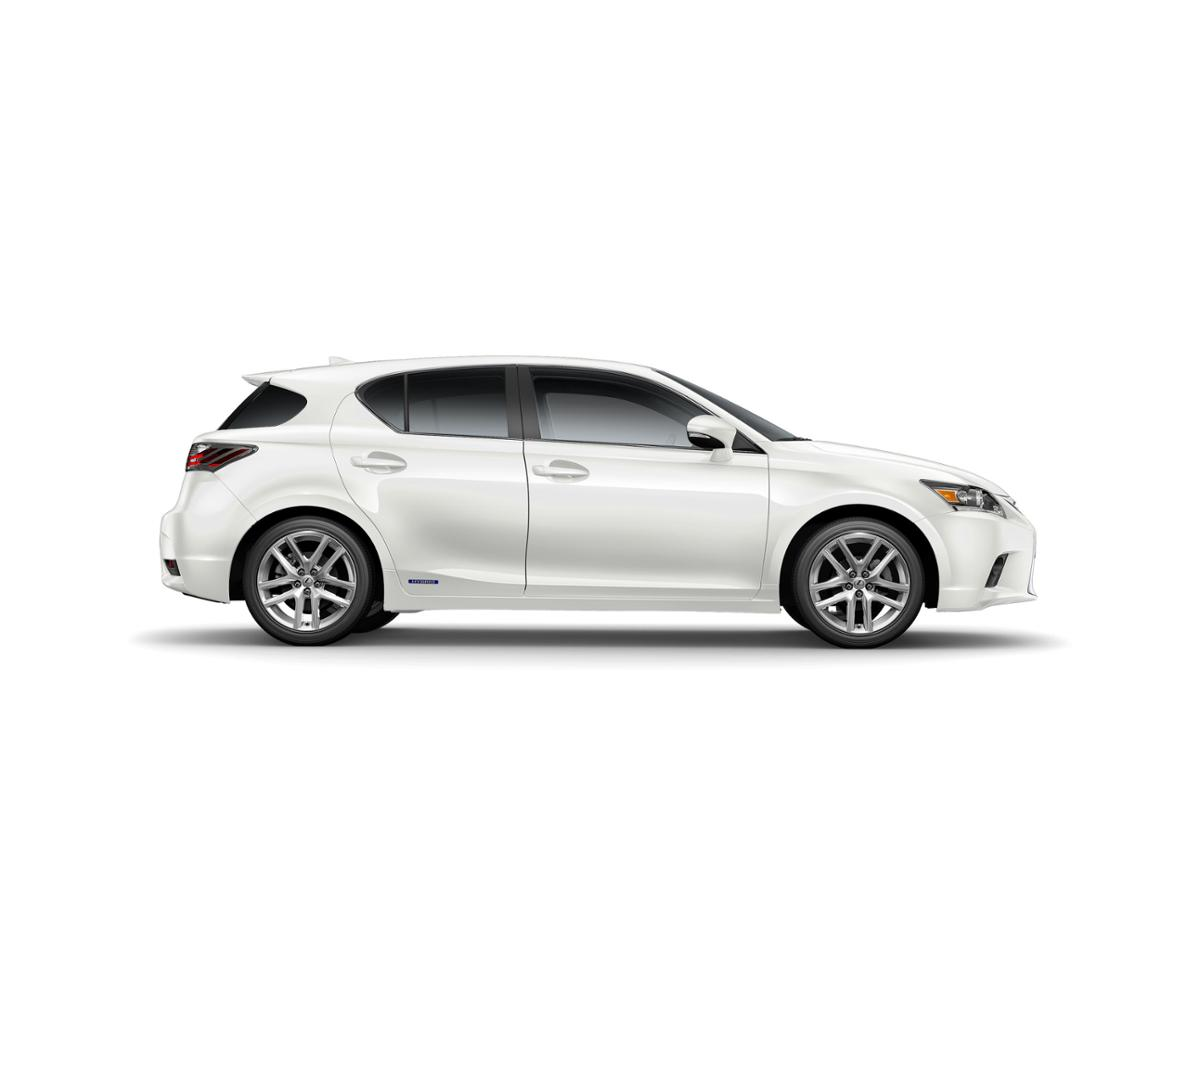 Lexus Dealerships In Ct: 2017 Eminent White Pearl FWD Lexus CT 200h For Sale In